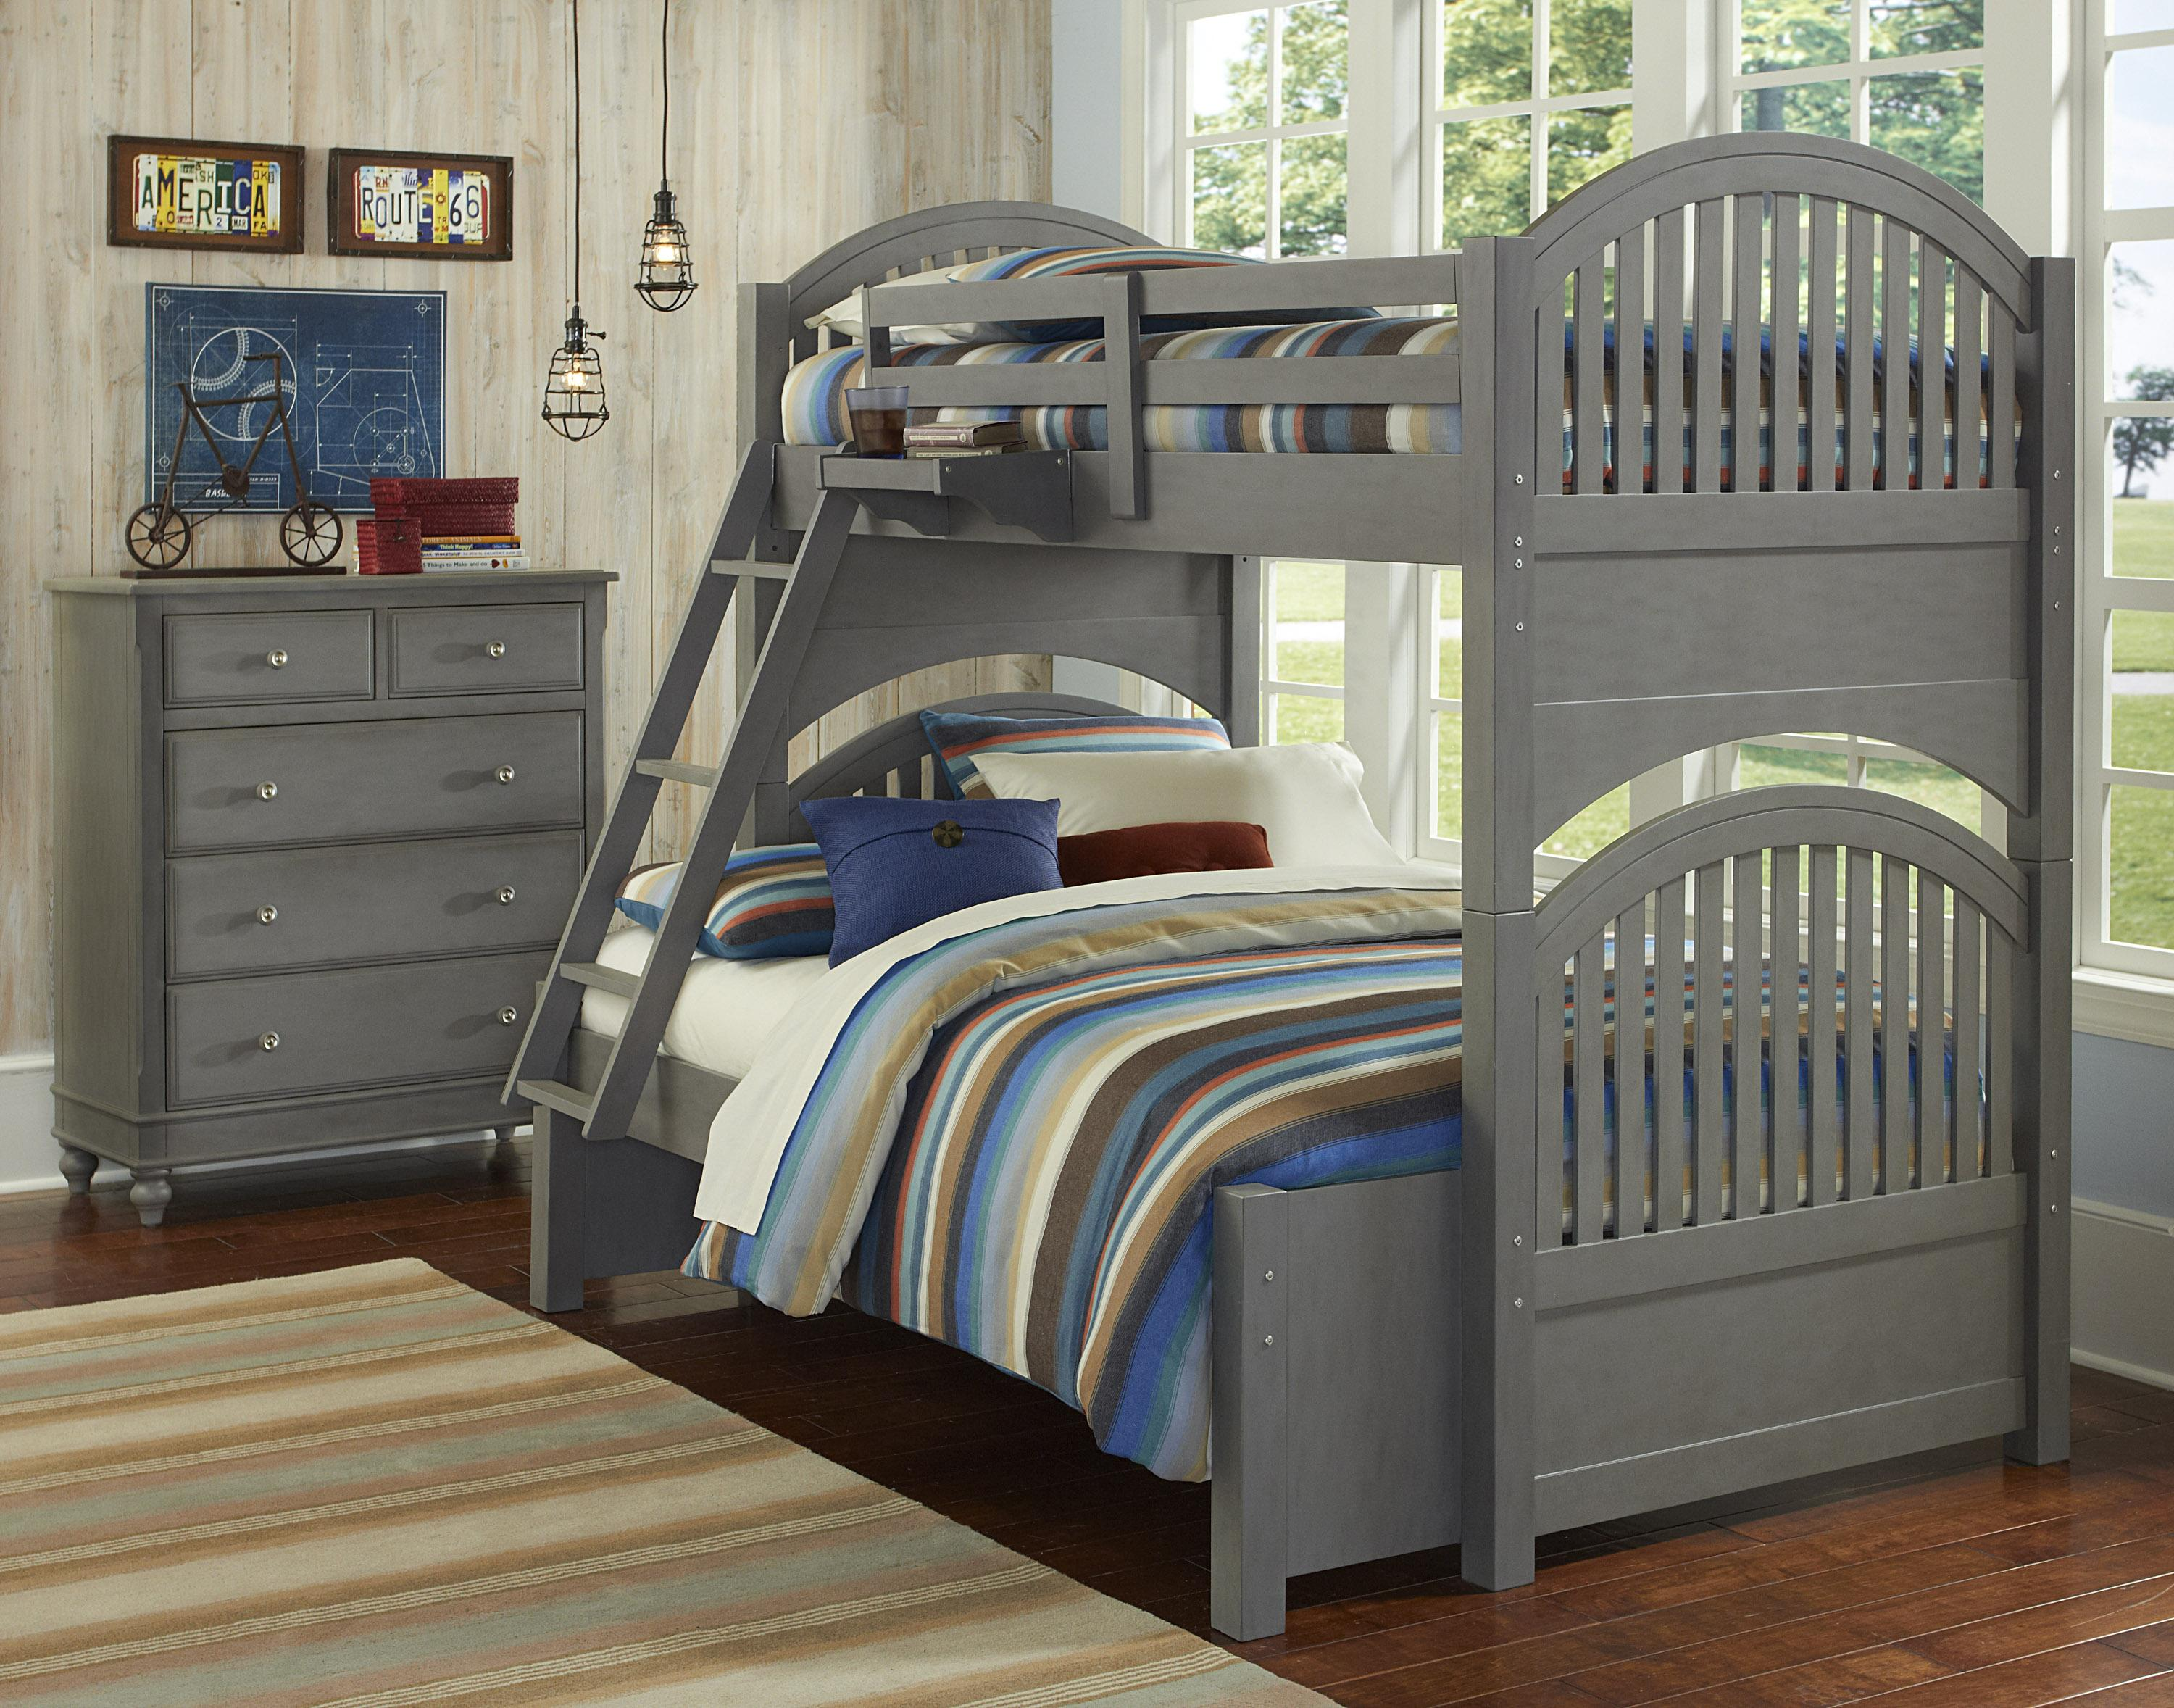 NE Kids Lake House Twin Over Full Standard Bunk Bed  - Item Number: 200 F Bunk Bed Group 1